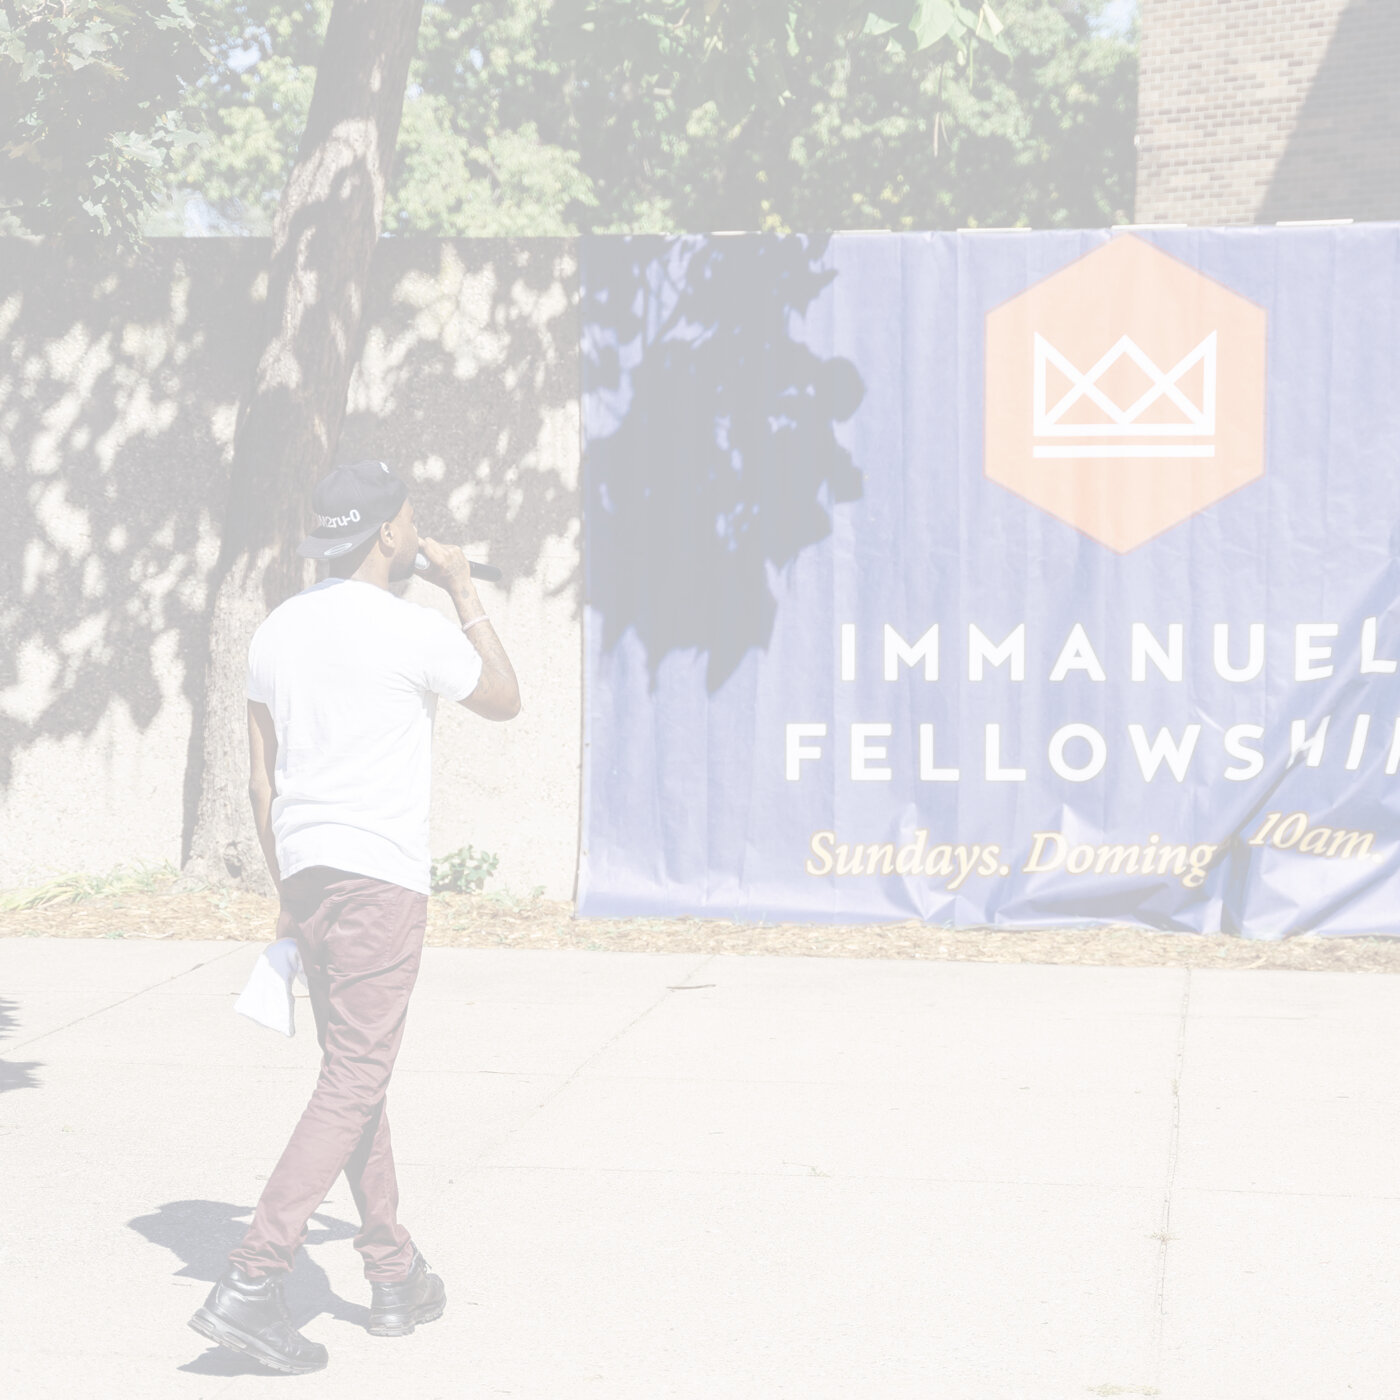 JOin us this COMING SUNDAY - Immanuel Fellowship is new church on the Southside